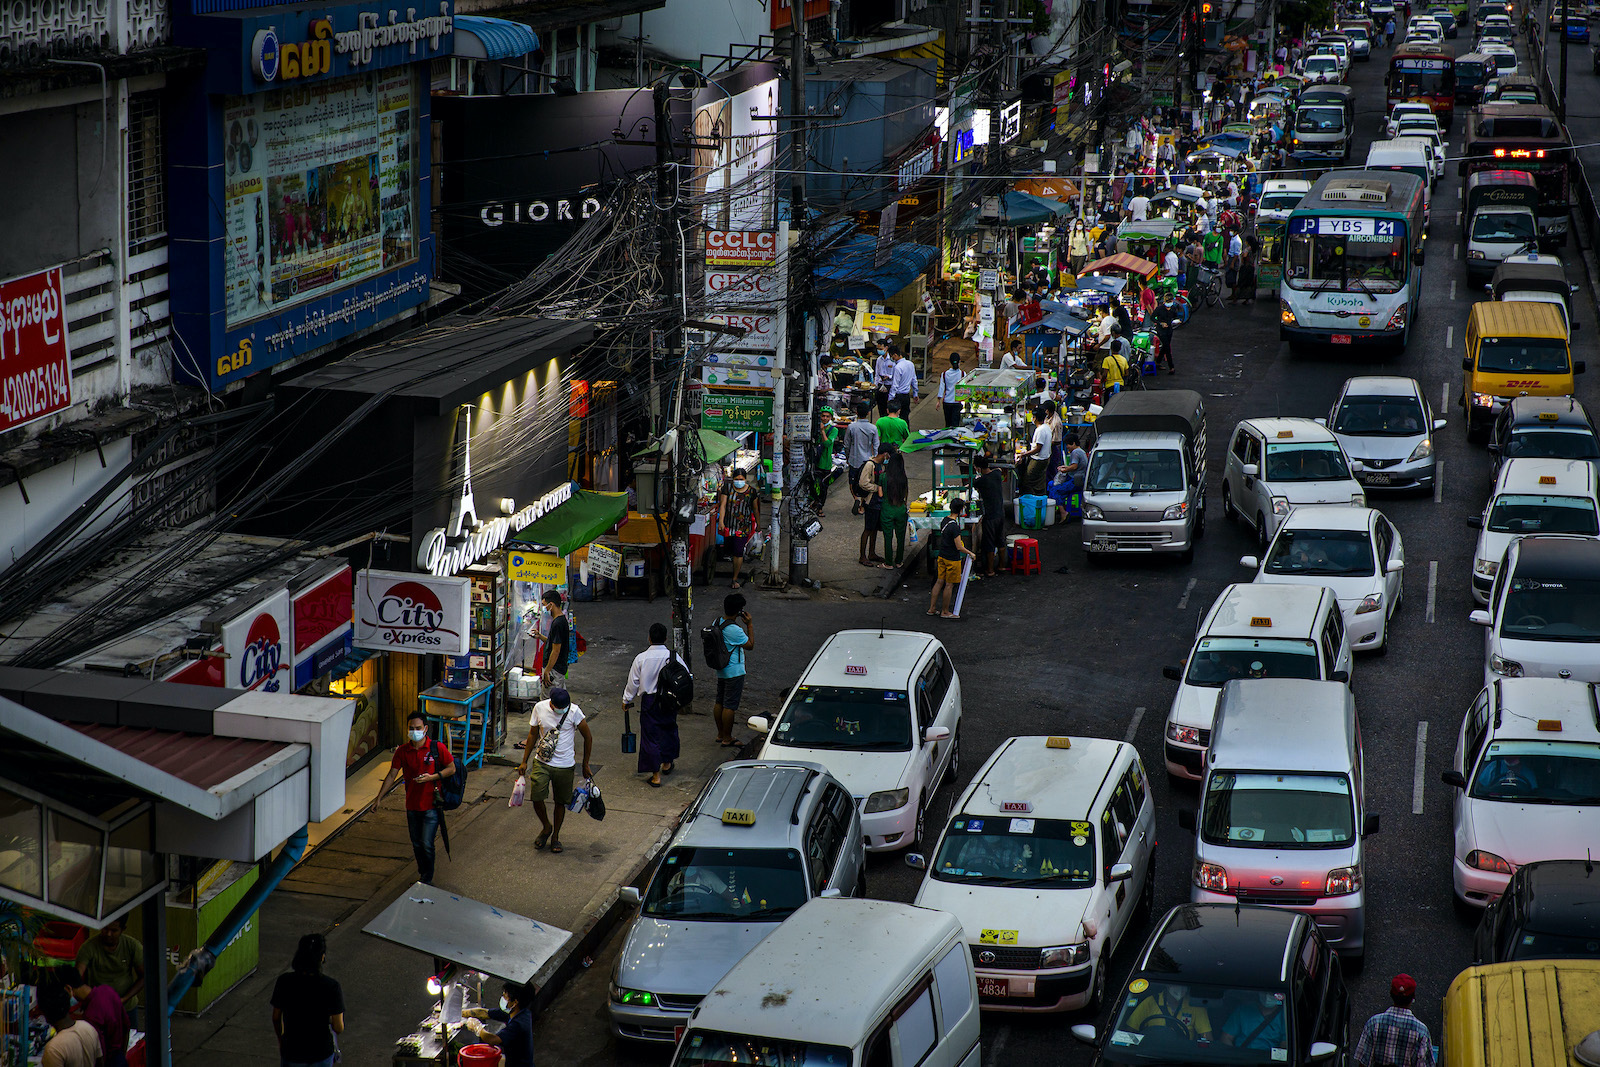 Drivers, pedestrians and vendors fill the streets of Yagon's Hledan Township, as in much of the rest of the city, on November 24, despite stay-at-home orders still officially remaining in effect. (Hkun Lat | Frontier)